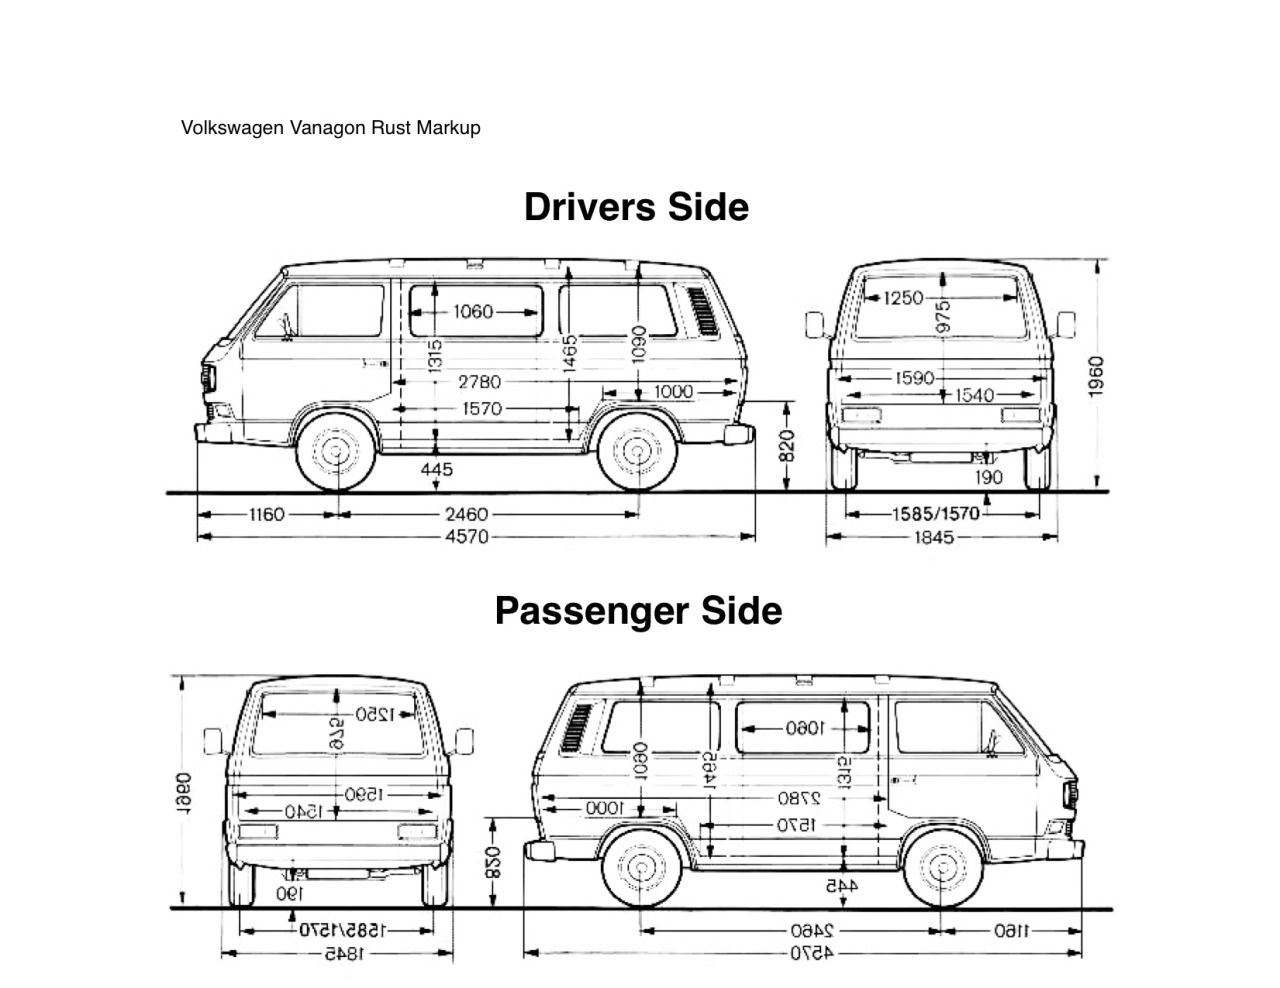 medium resolution of vw vanagon rust diagram track the rust or damage to your vanagon body